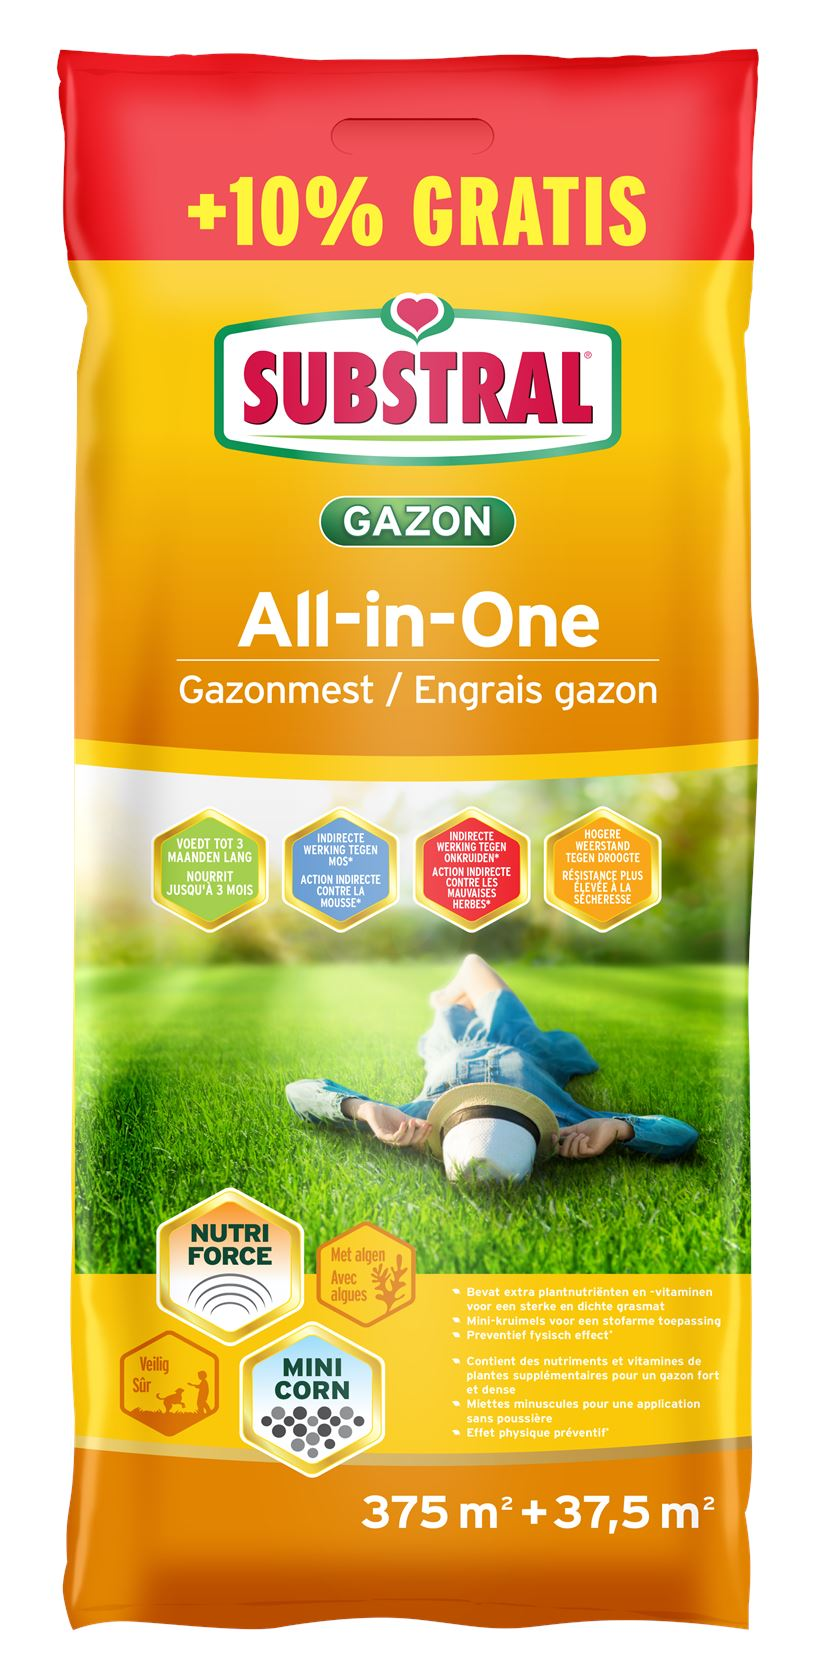 Substral-Gazonmest-All-in-One-20-5kg